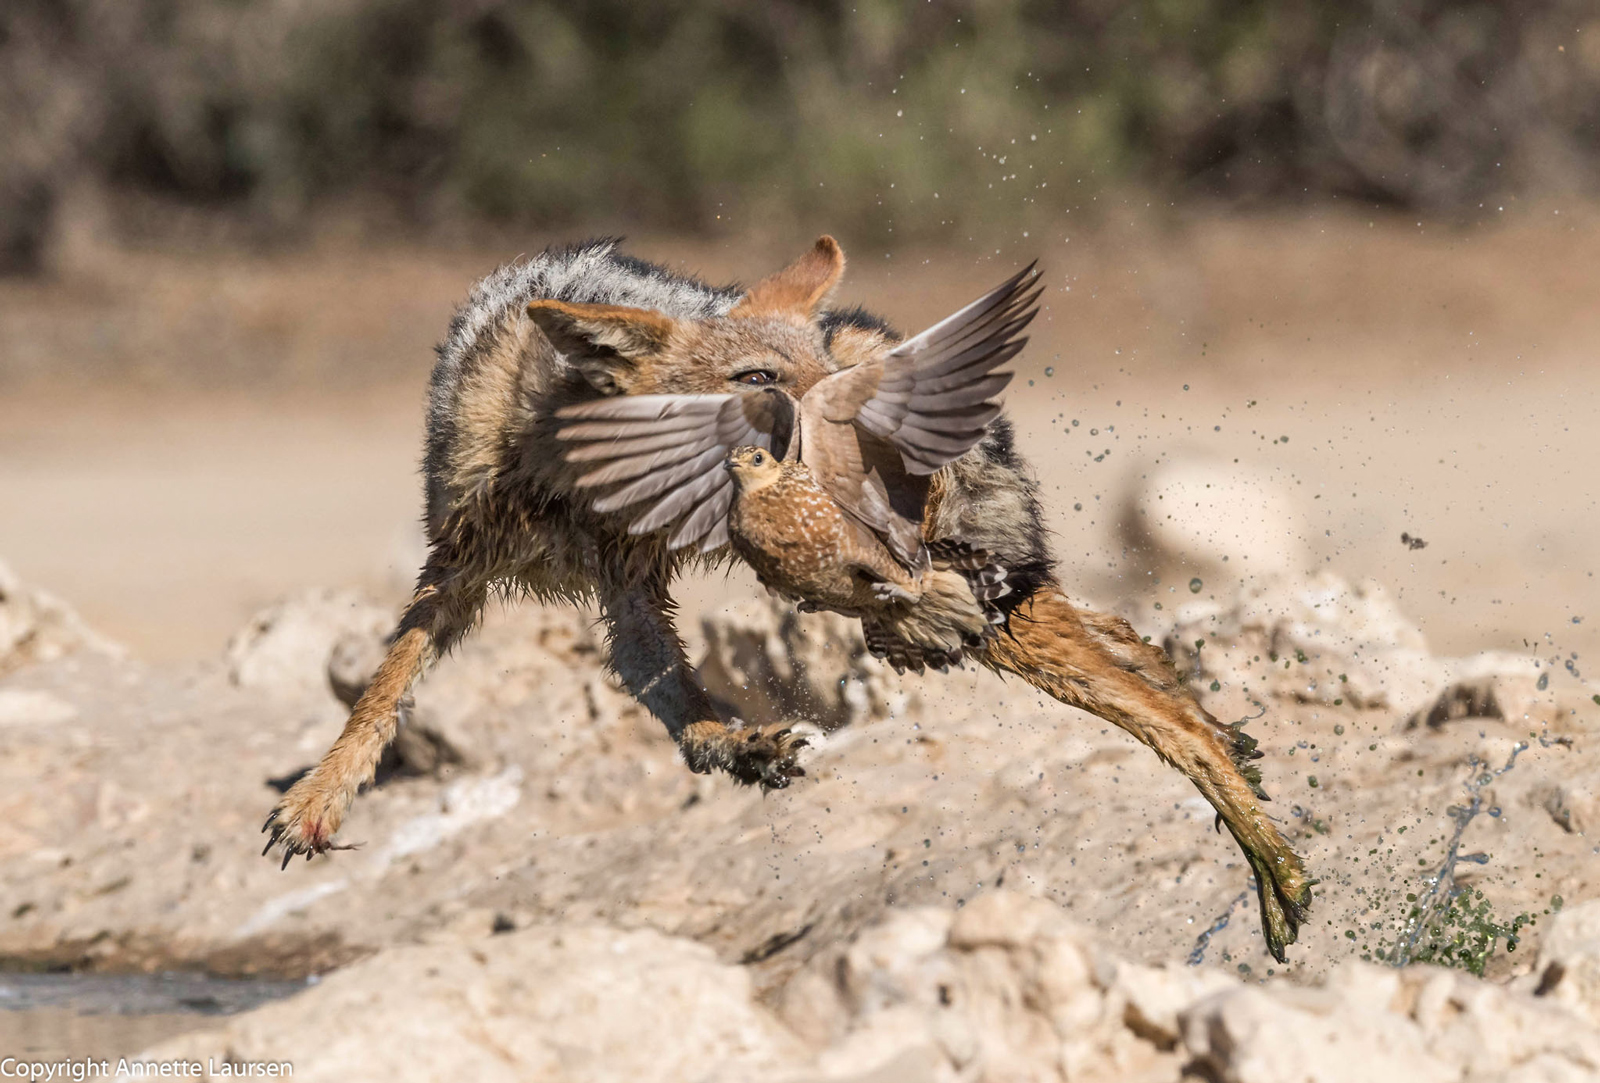 A jackal catching a sandgrouse in the Kgalagadi Transfrontier Park ©Annette Laursen